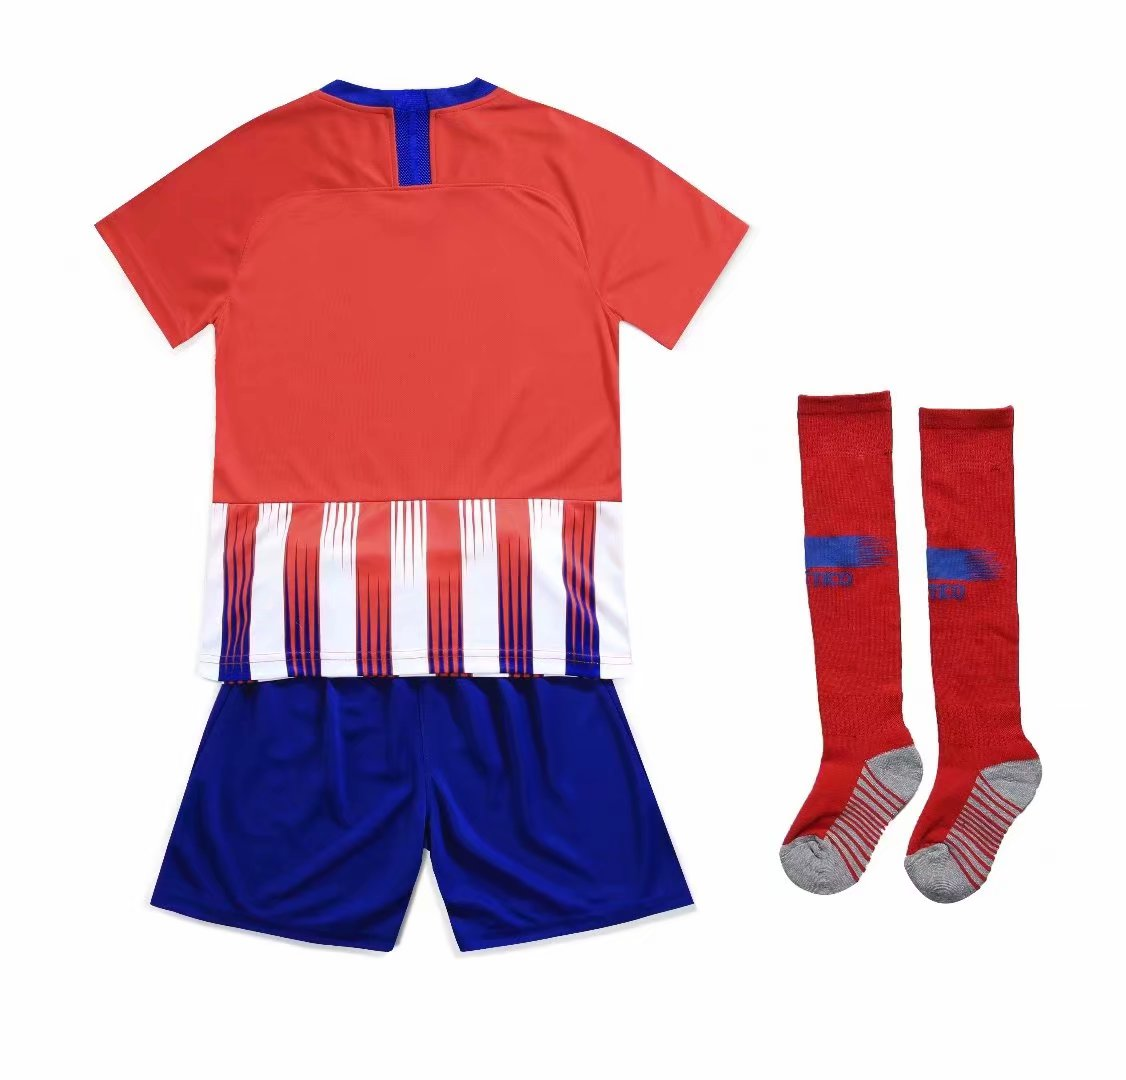 c68c0fec305 2018-19 Atletico Madrid Home Red White Without Logo Kid Youth Soccer ...